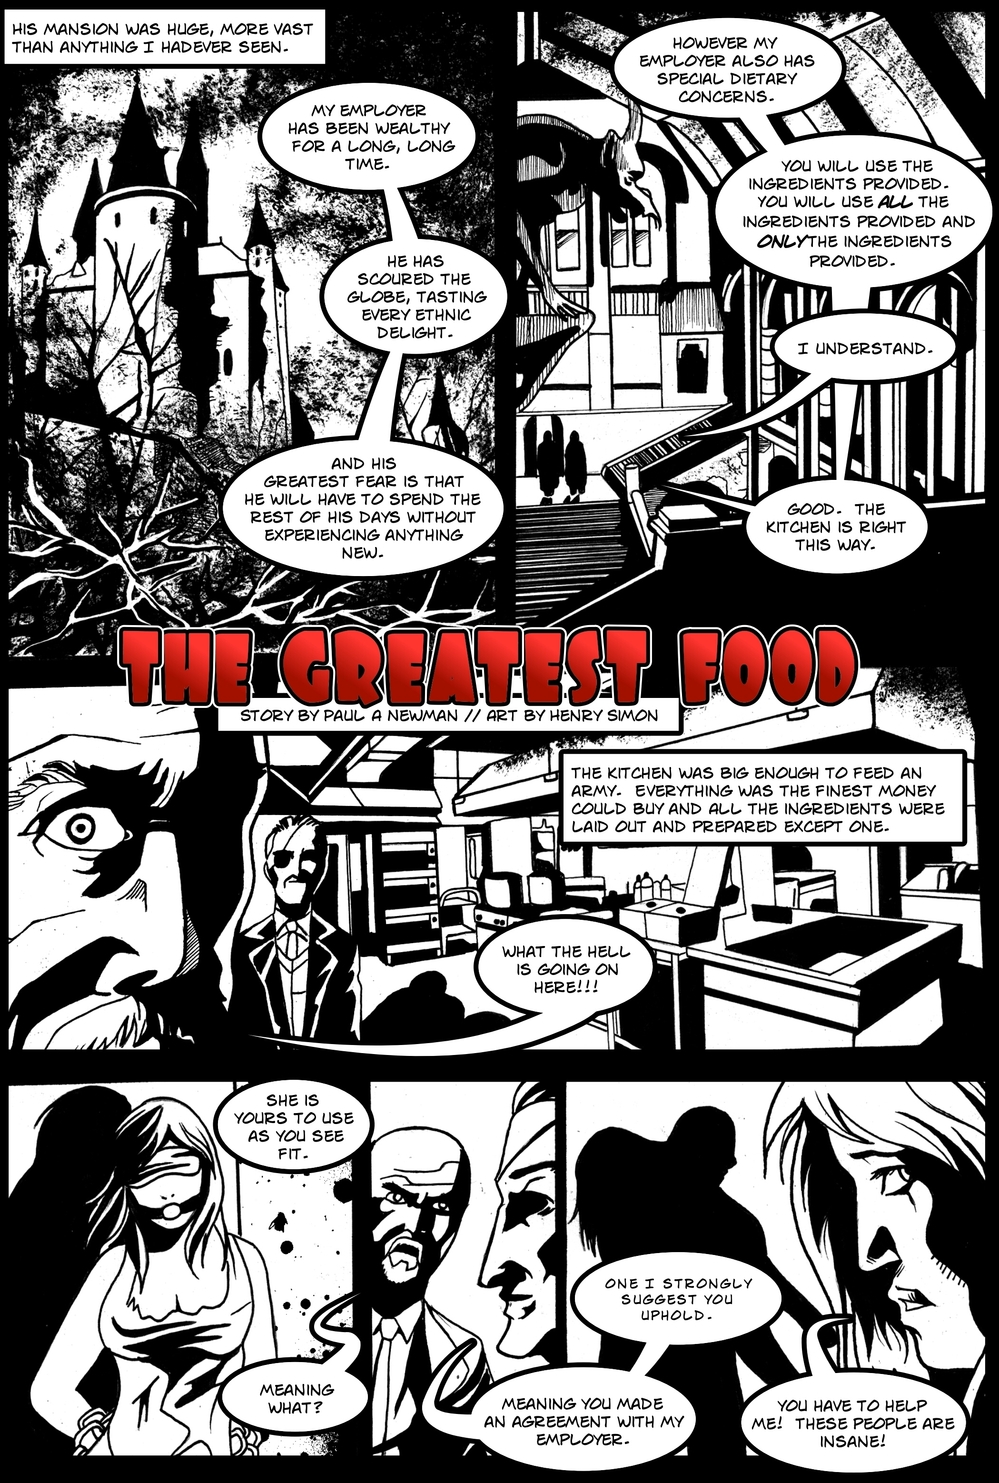 THE GREATEST FOOD page2 -- in The Book of Lies